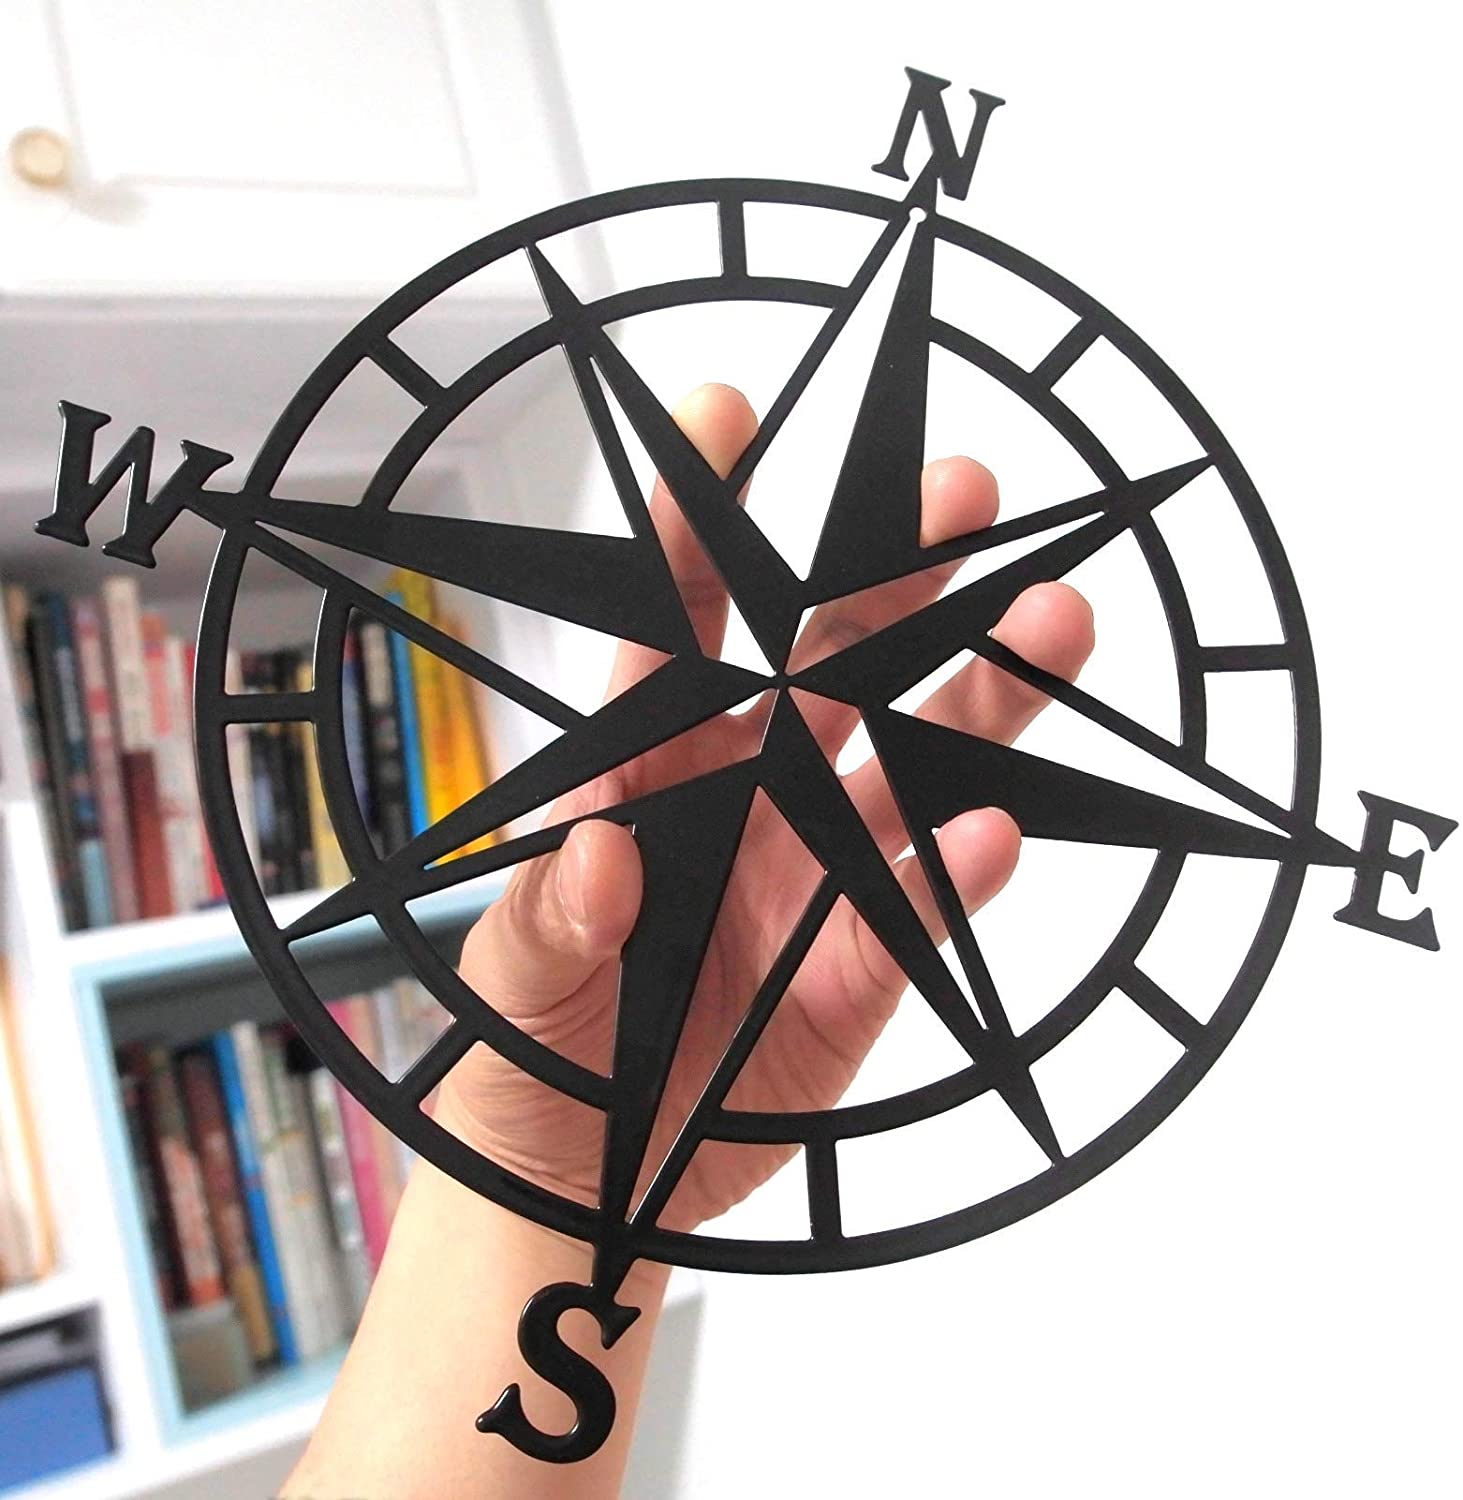 ESTART 11 Inches Metal Decorative Nautical Compass Wall Decor, Living Room Bedroom Office Porch Garden Patio Signs Wall Hanging Art Beach Theme Home Decoration (Black)